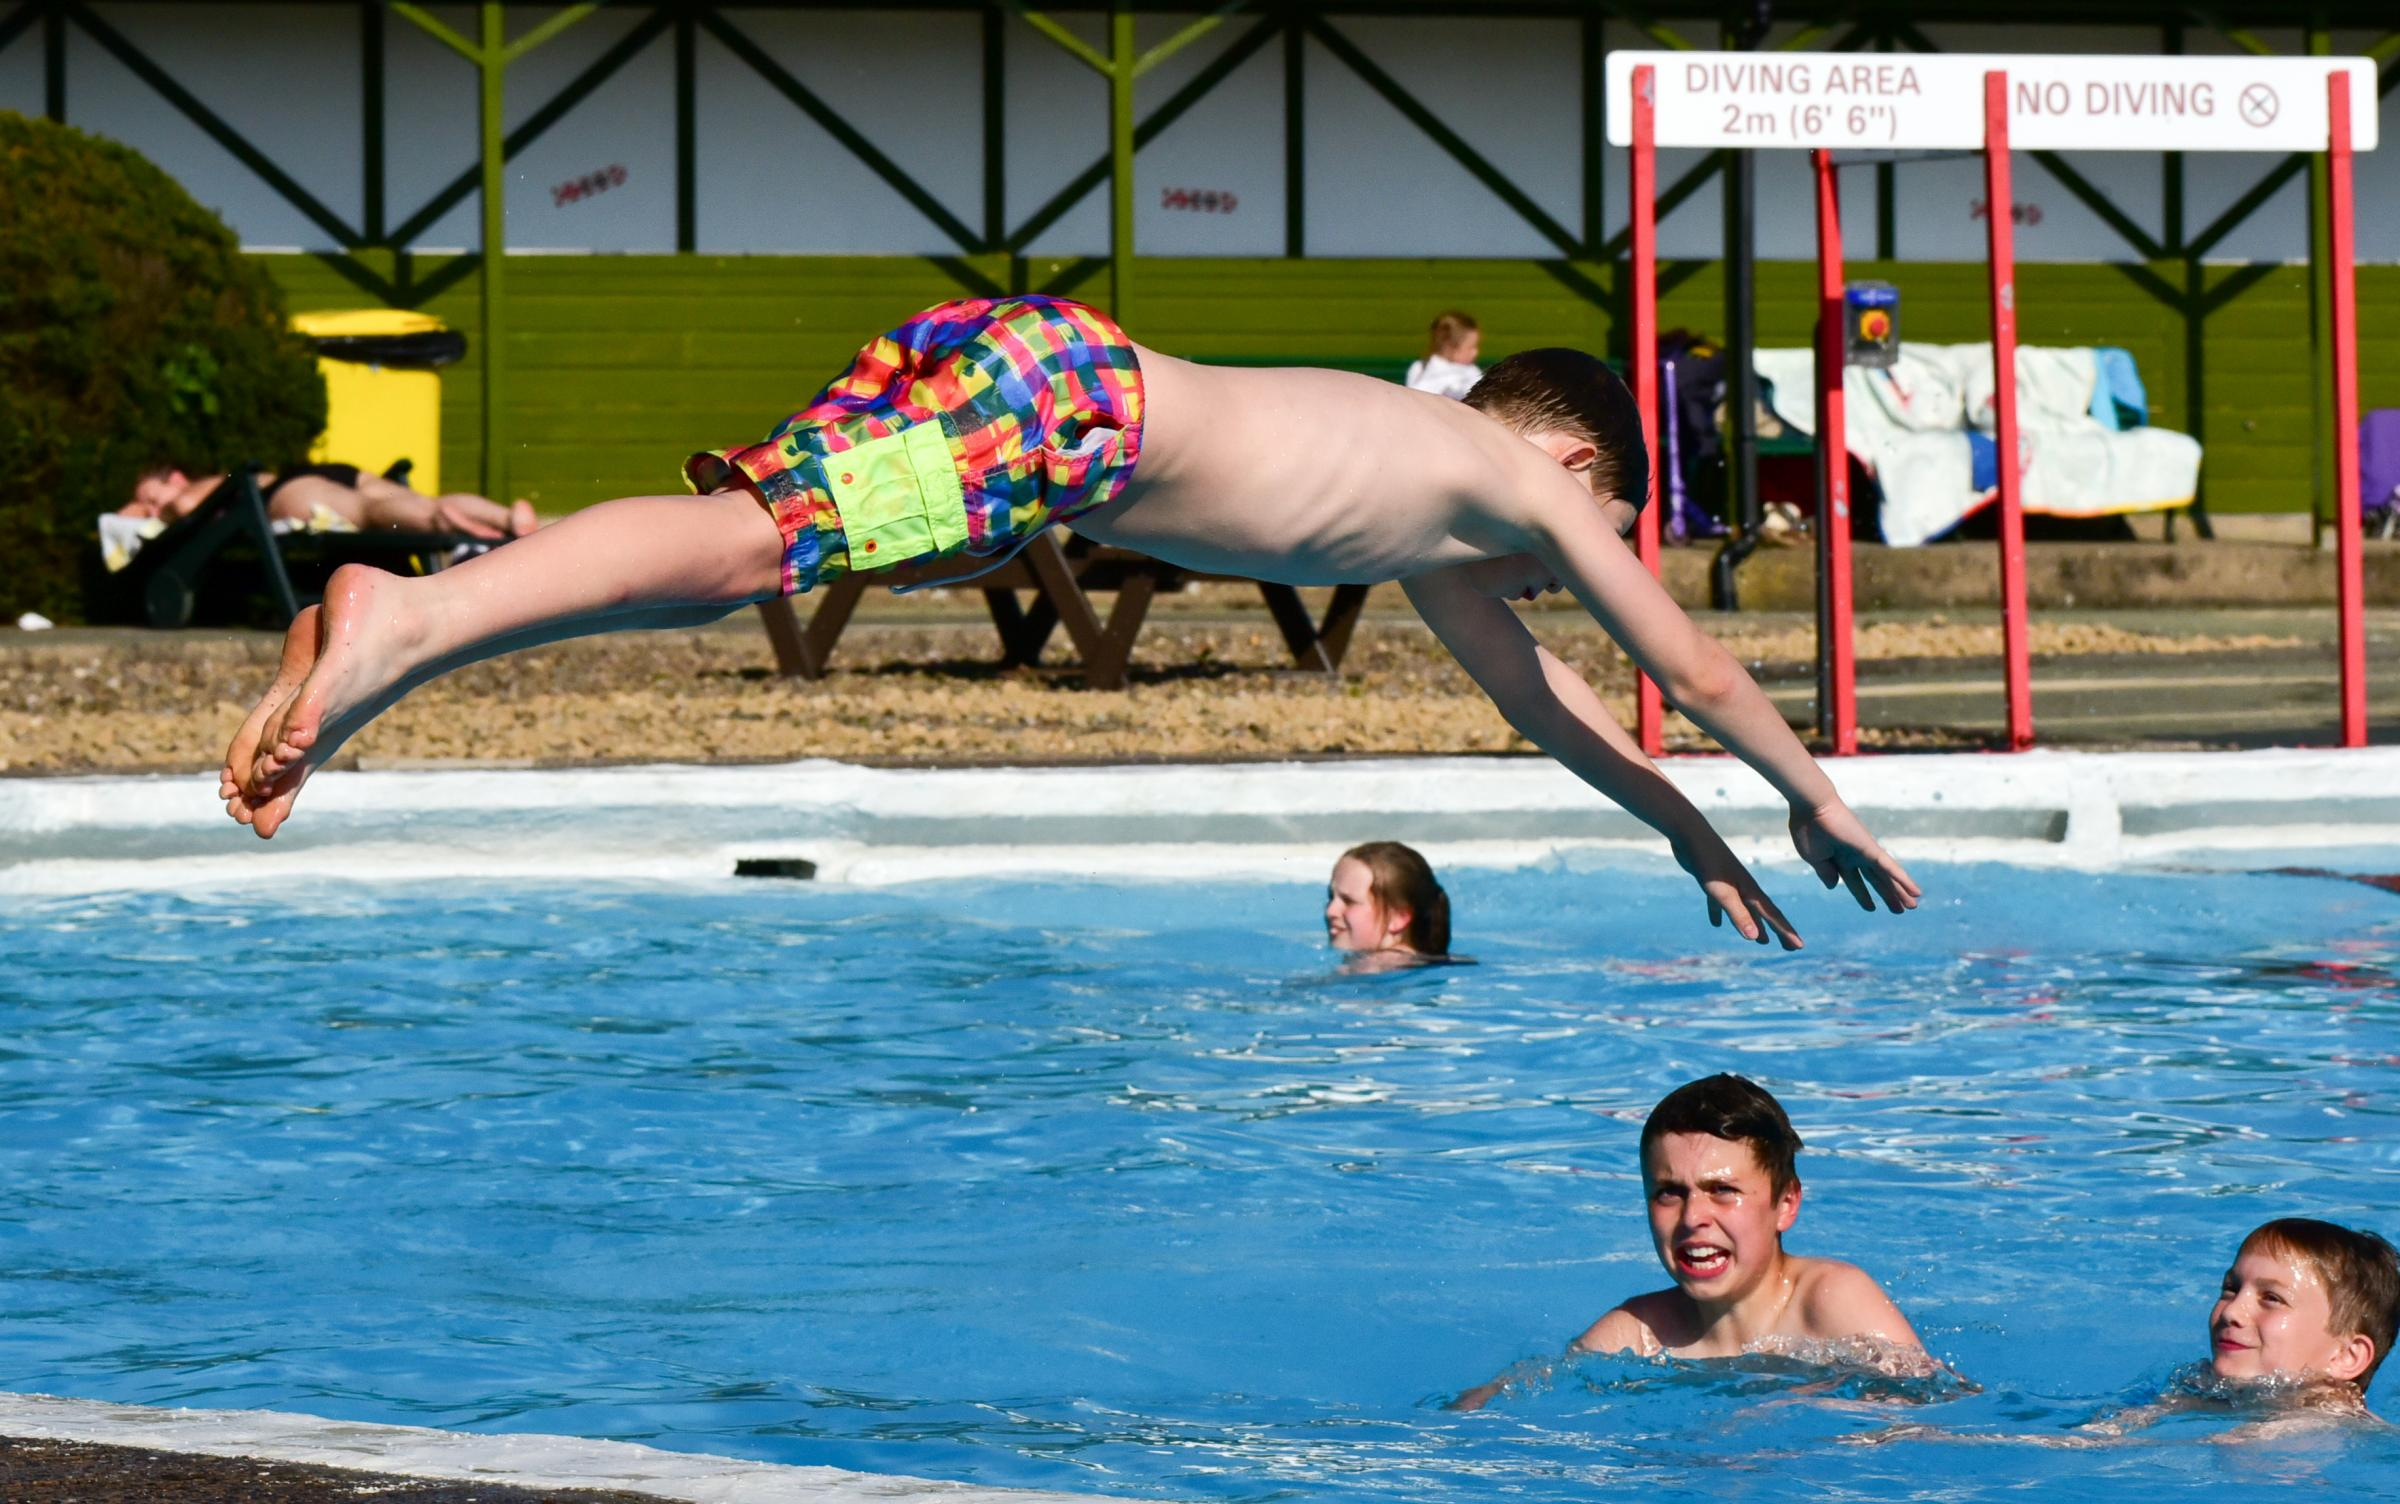 Ilkley Lido will officially open for summer this Saturday, May 26